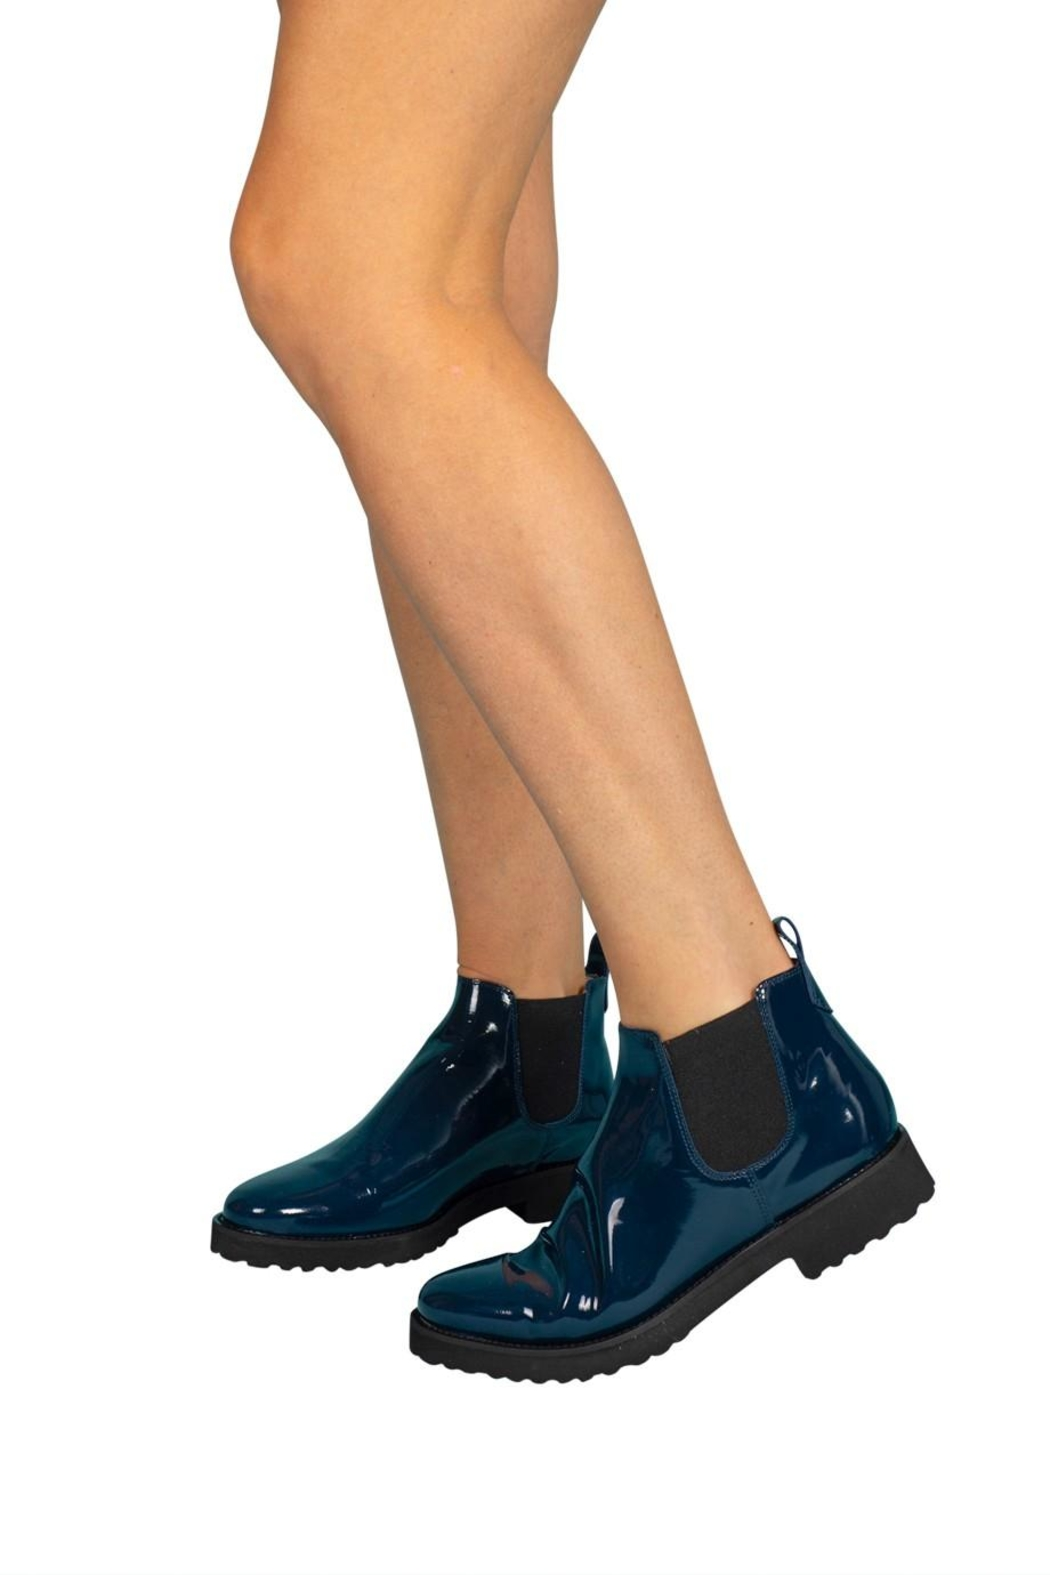 Pascucci Blue Patent-Leather Ankle-Boots - Back Cropped Image